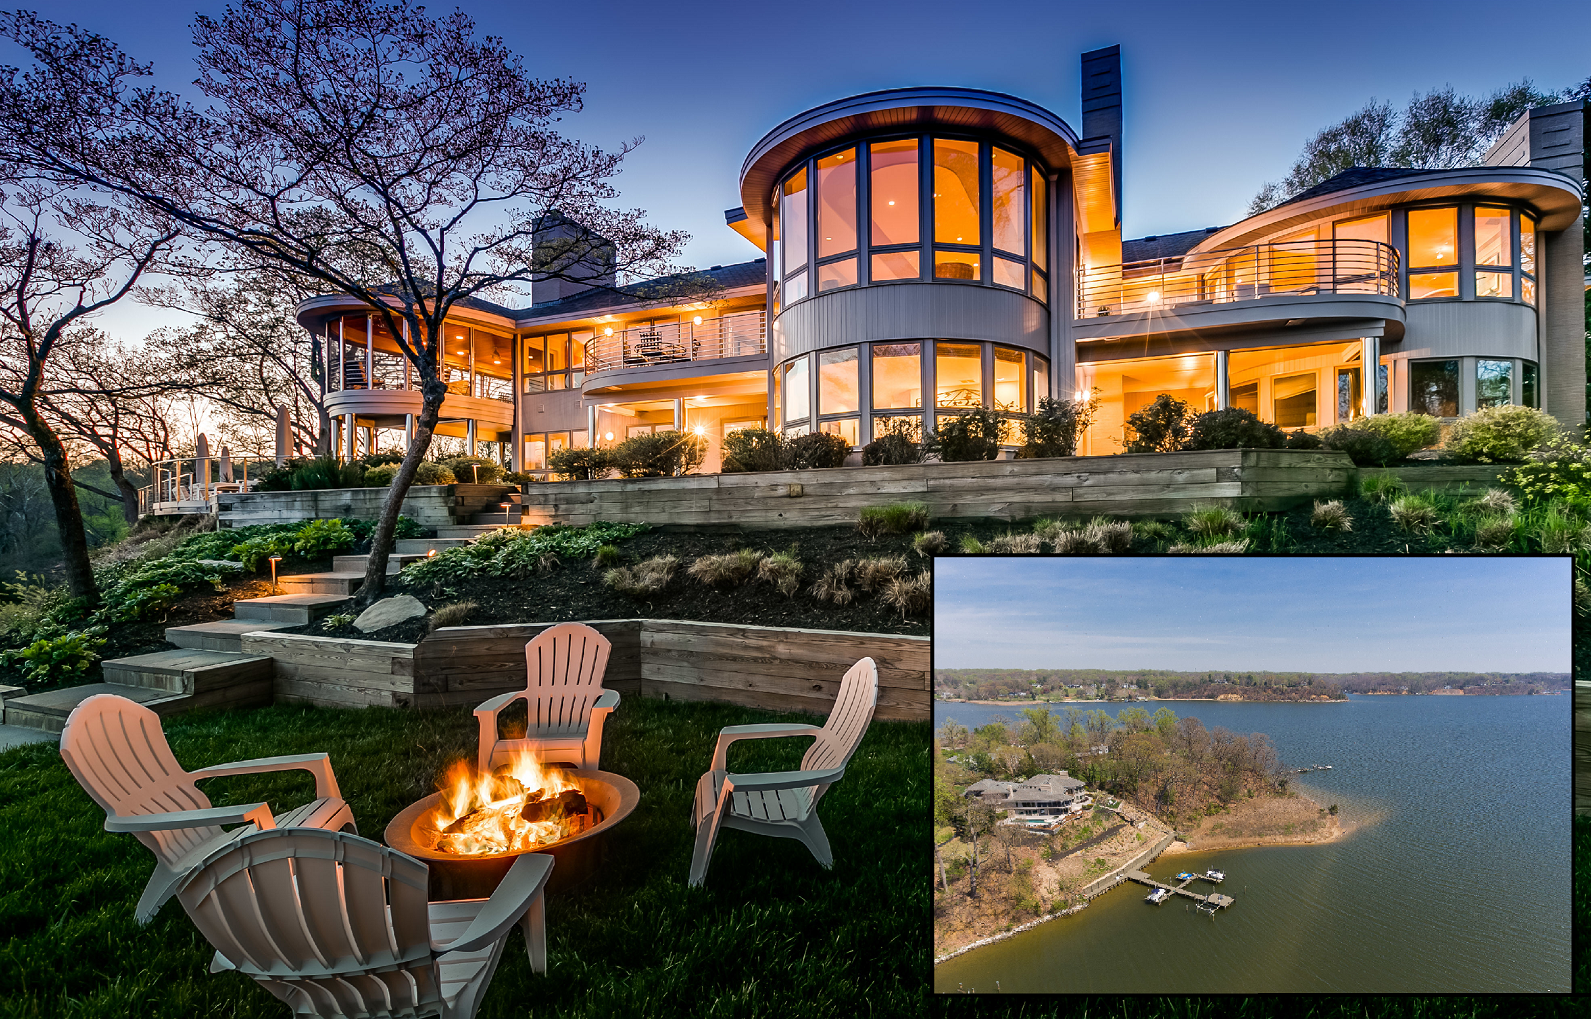 819 Coachway | Waterfront homes, Annapolis, House